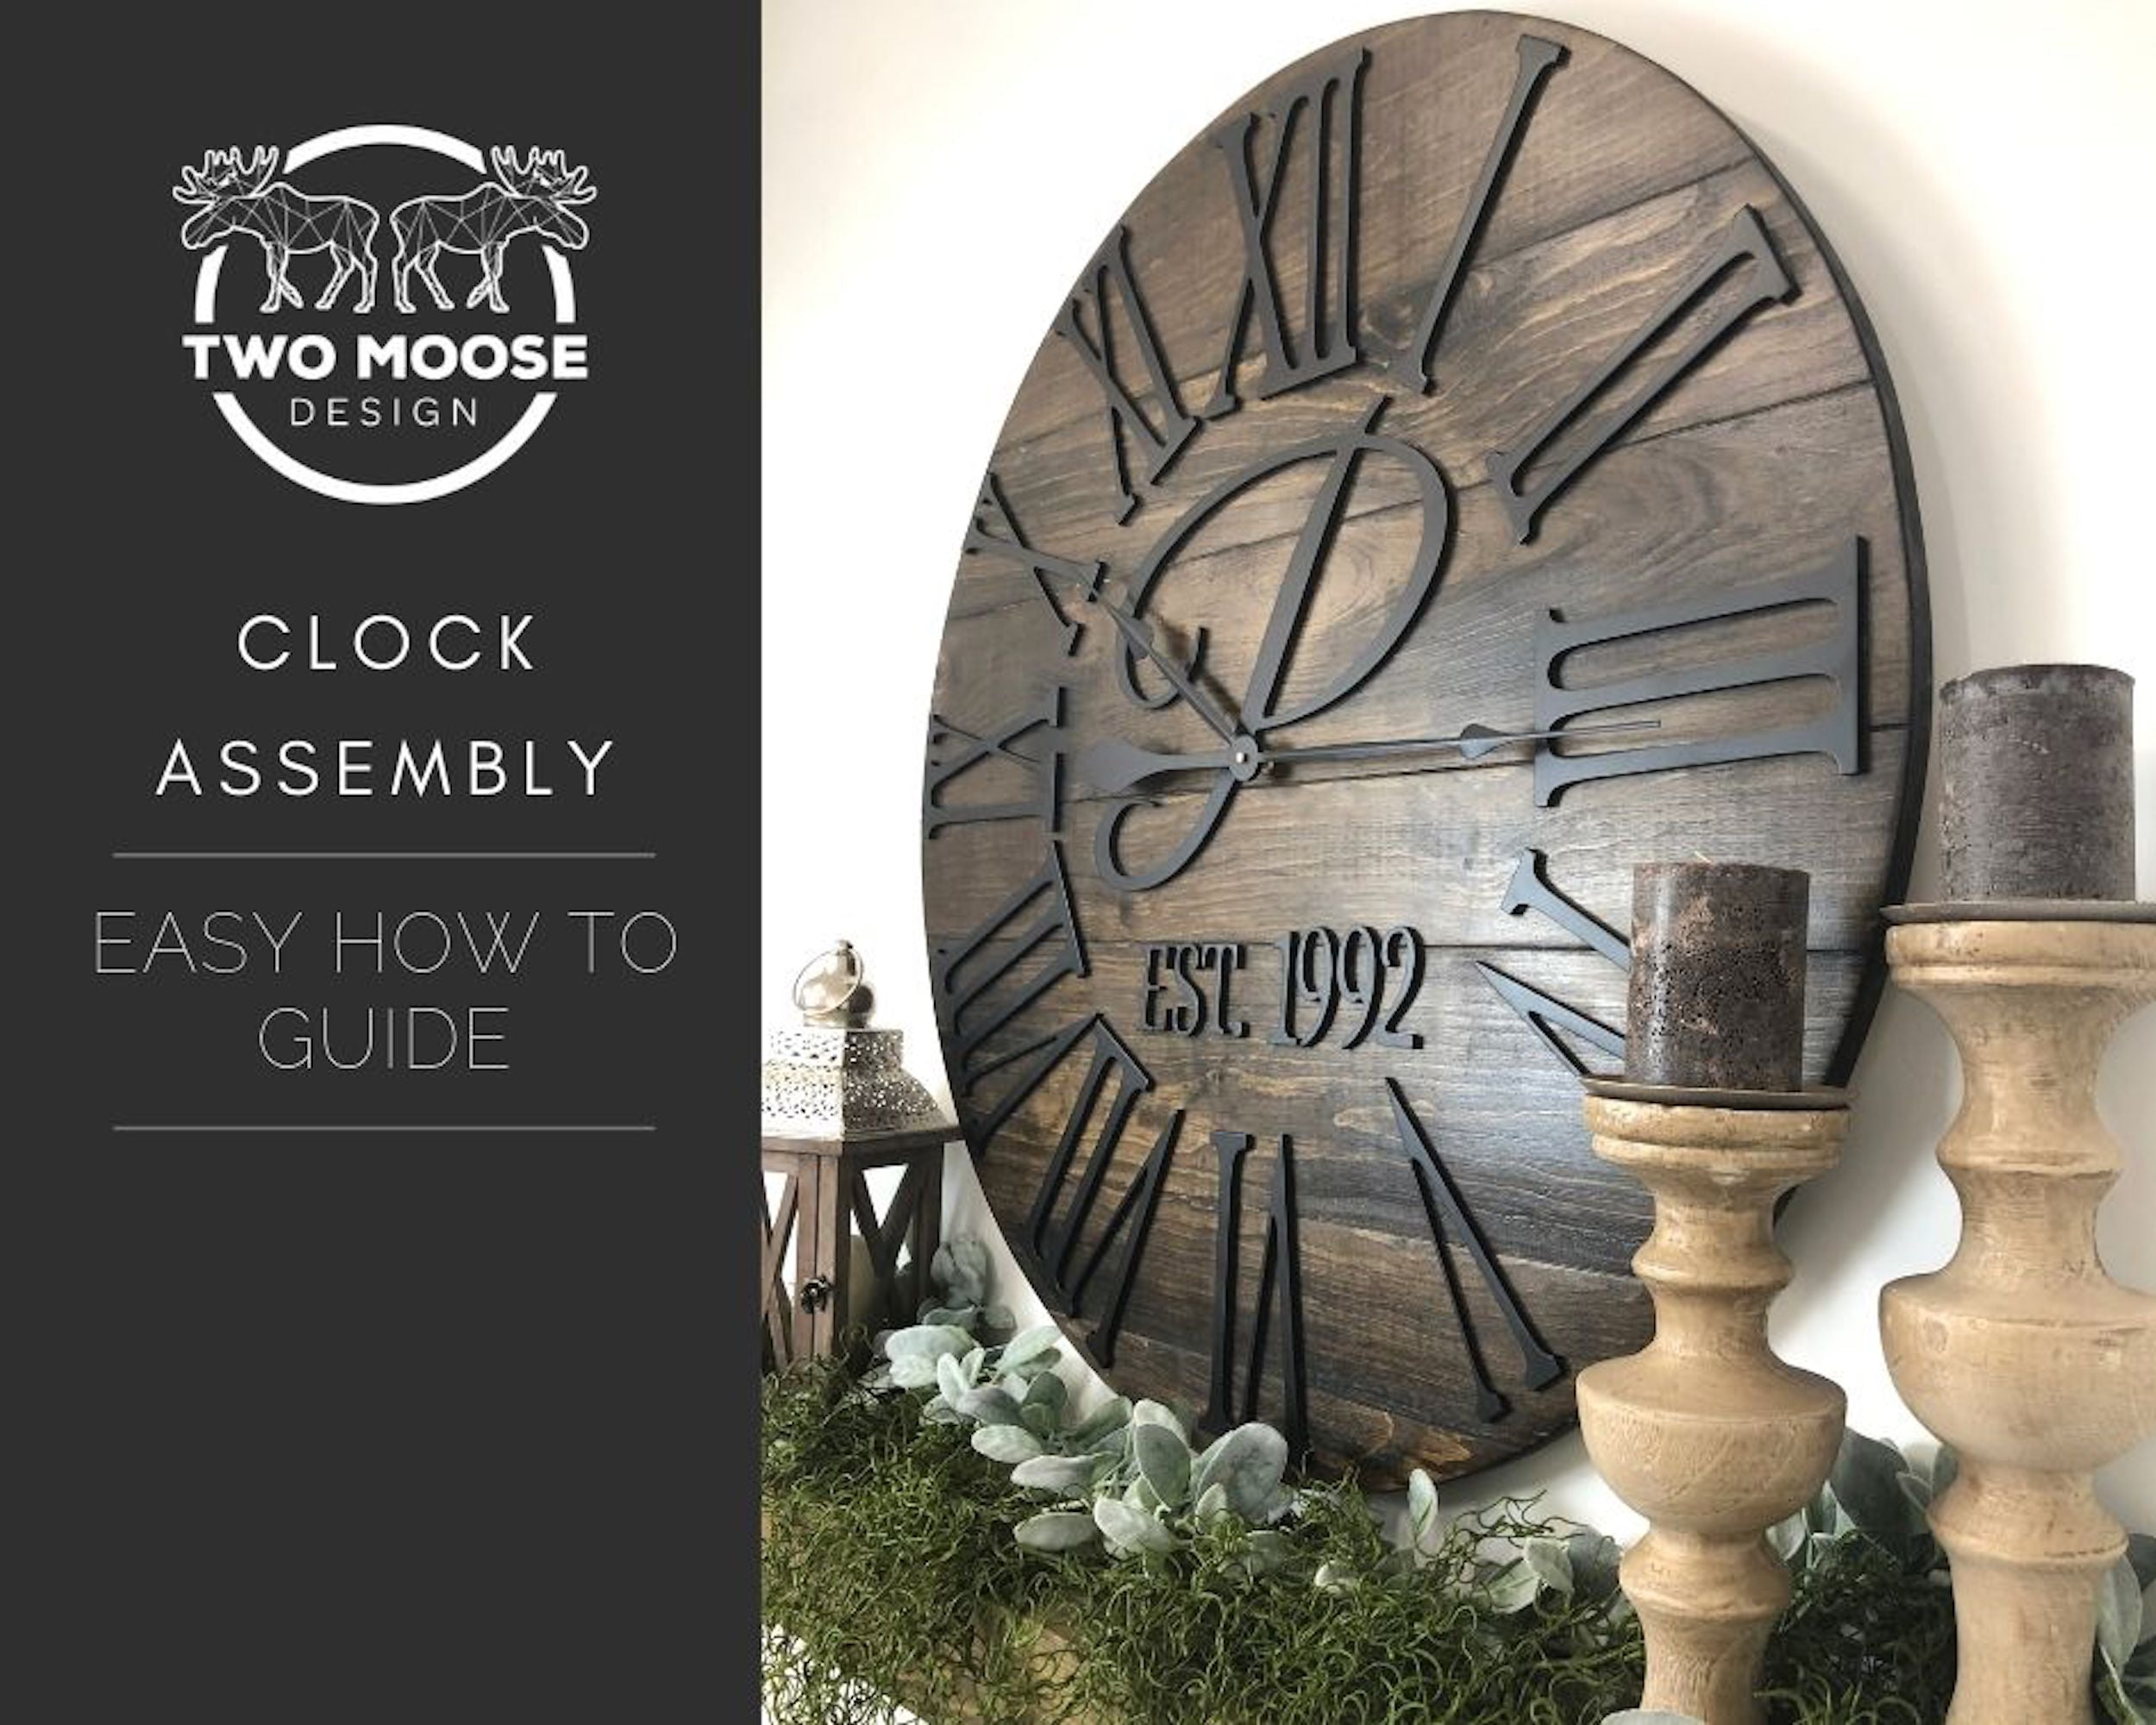 Two Moose Clock Assembly